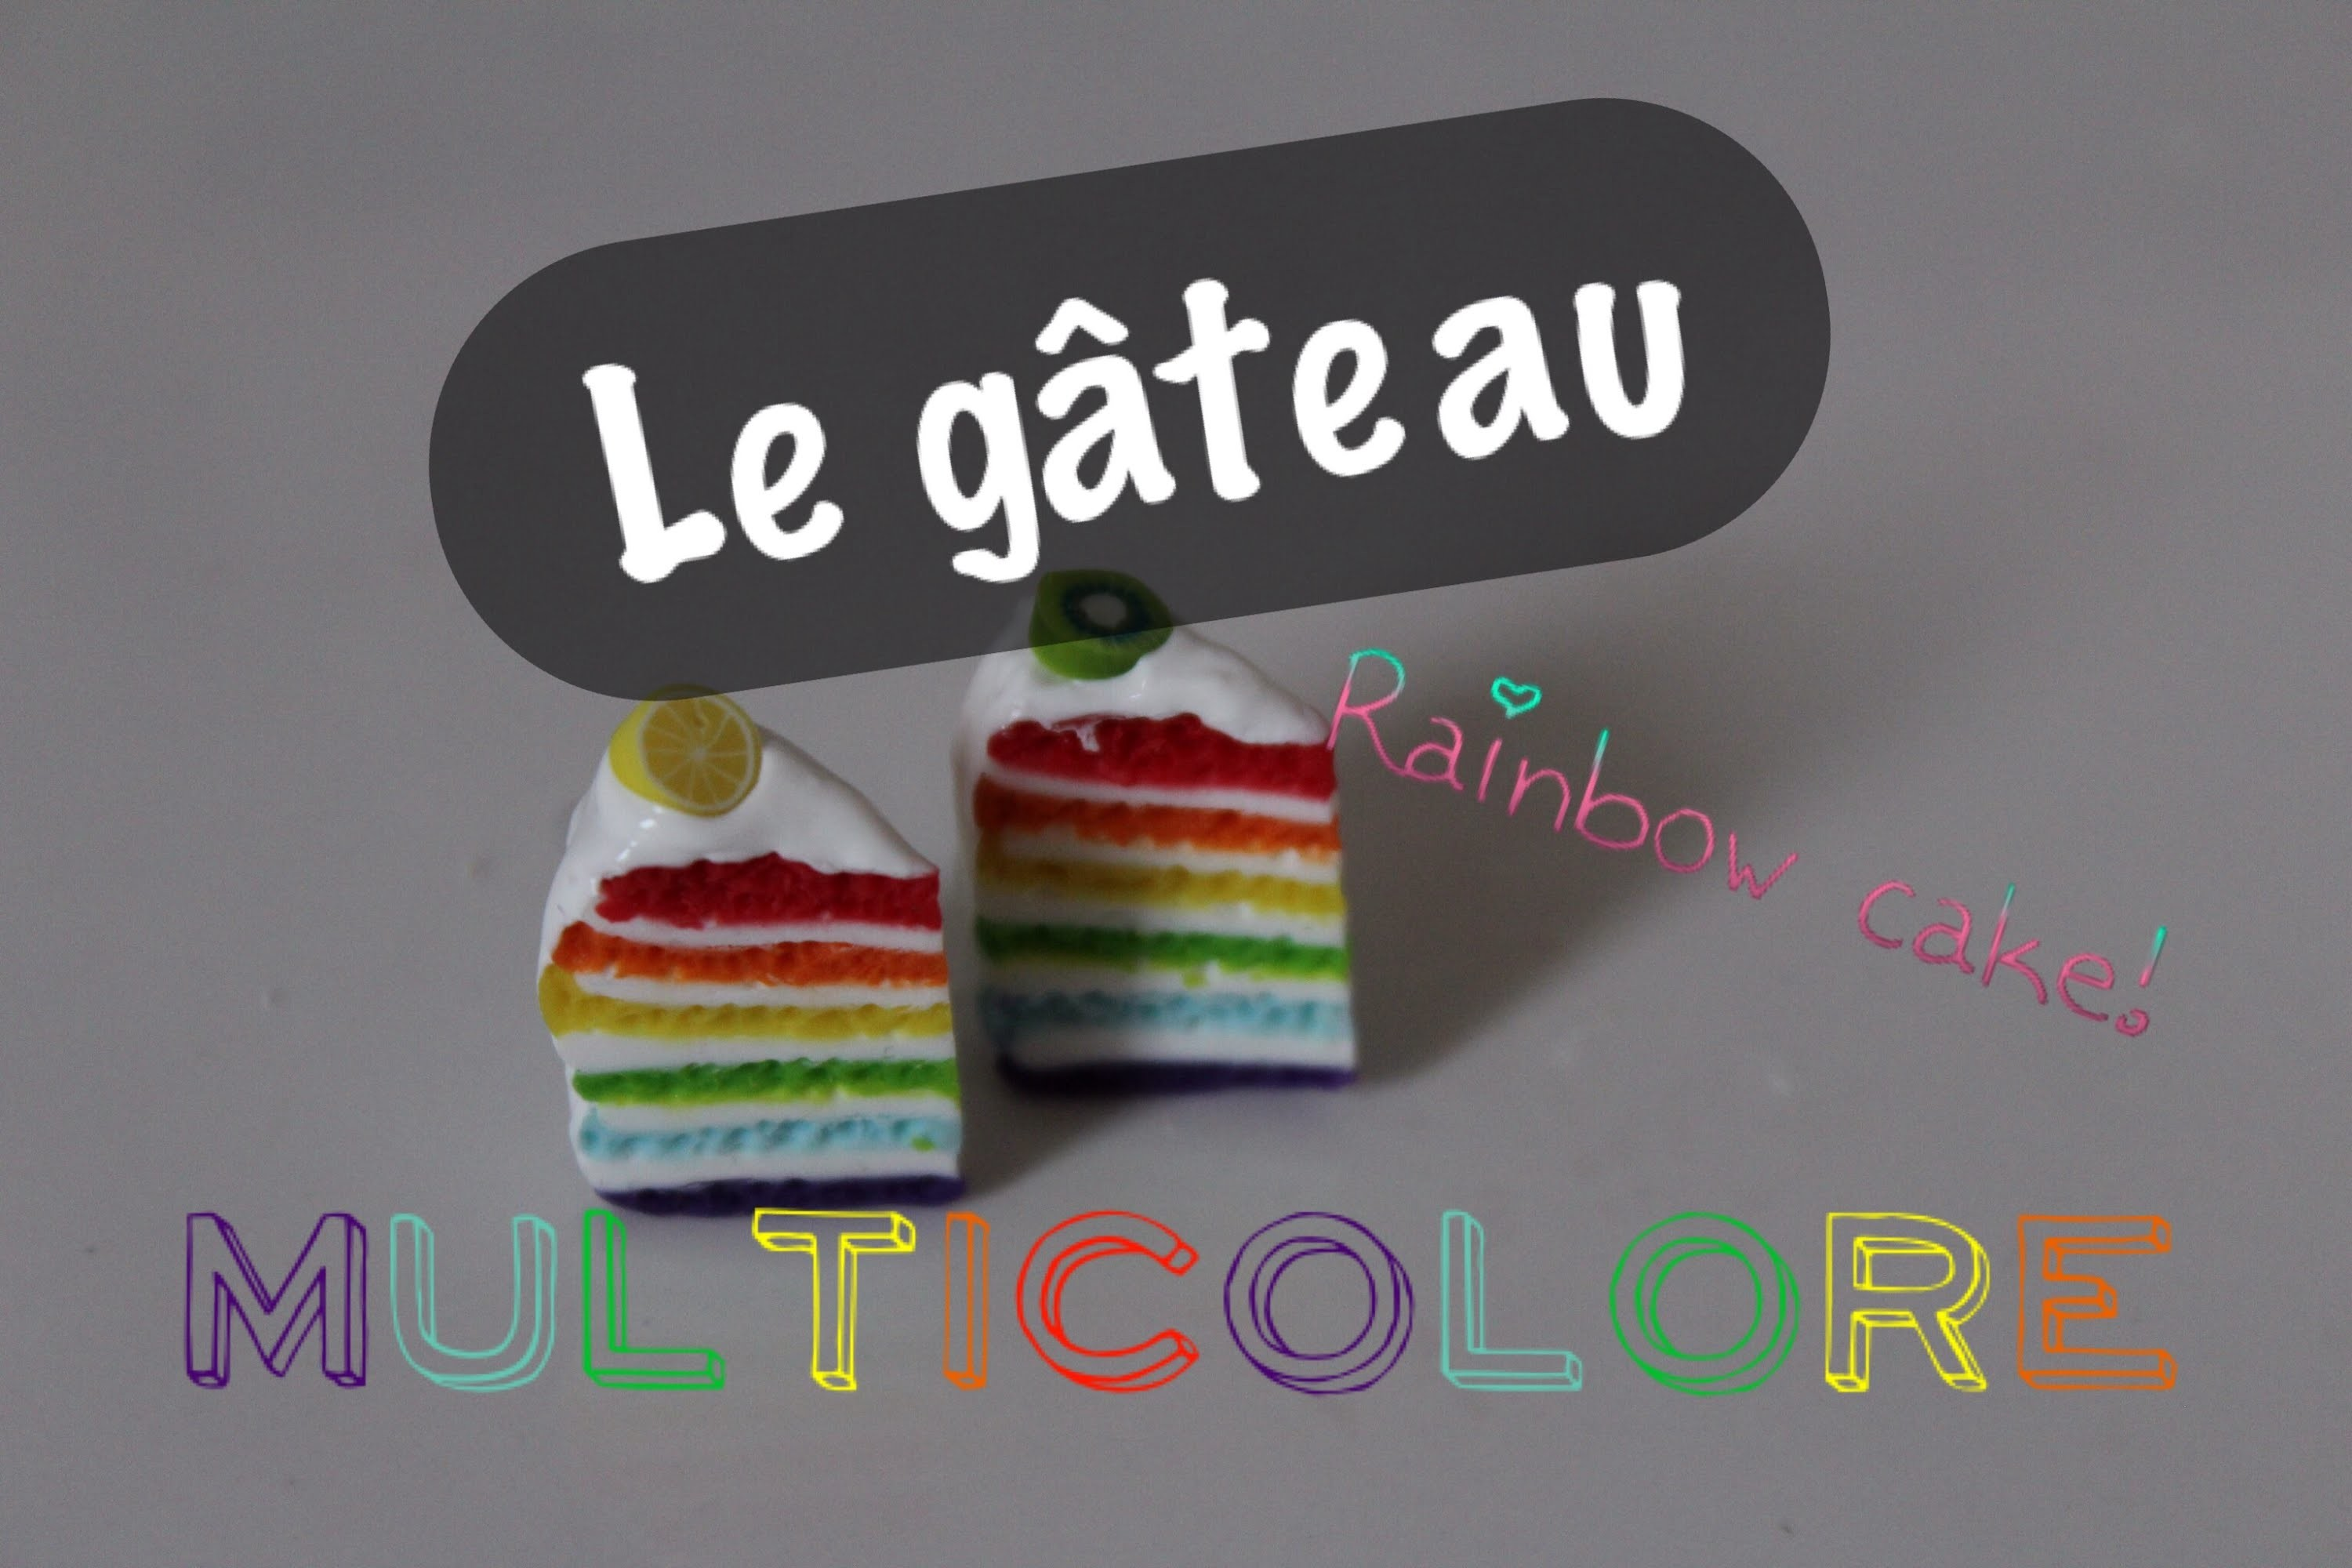 Le gateau multicolore~Le Rainbow Cake!